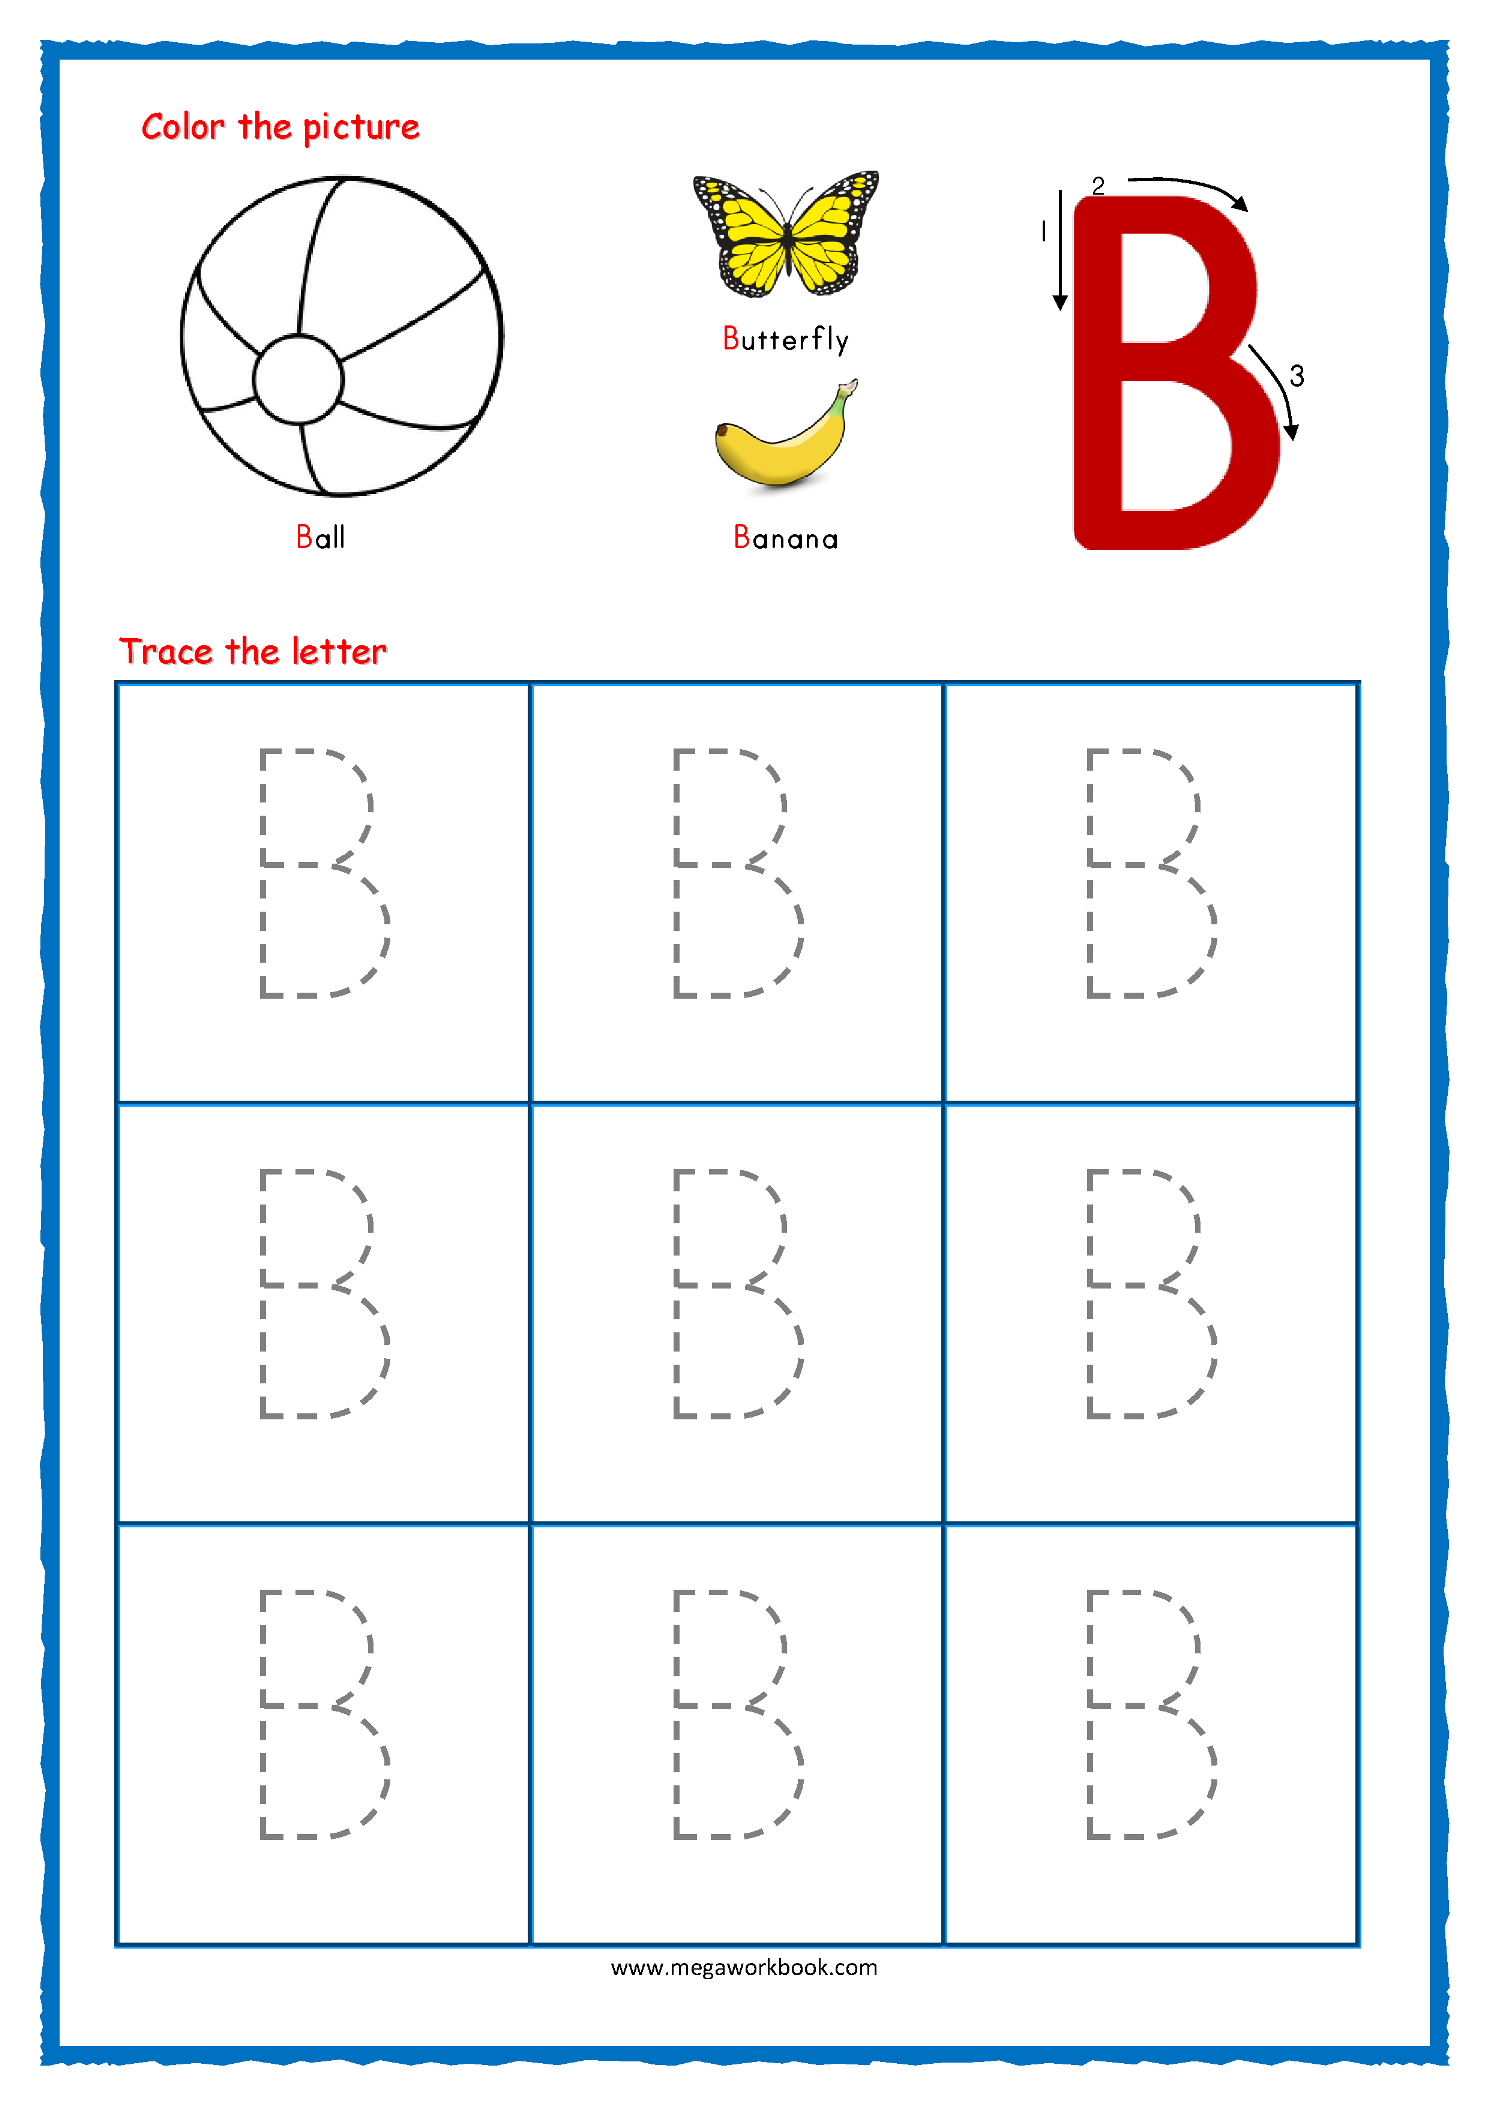 Tracing Letters - Alphabet Tracing - Capital Letters with regard to Tracing Letters A To Z